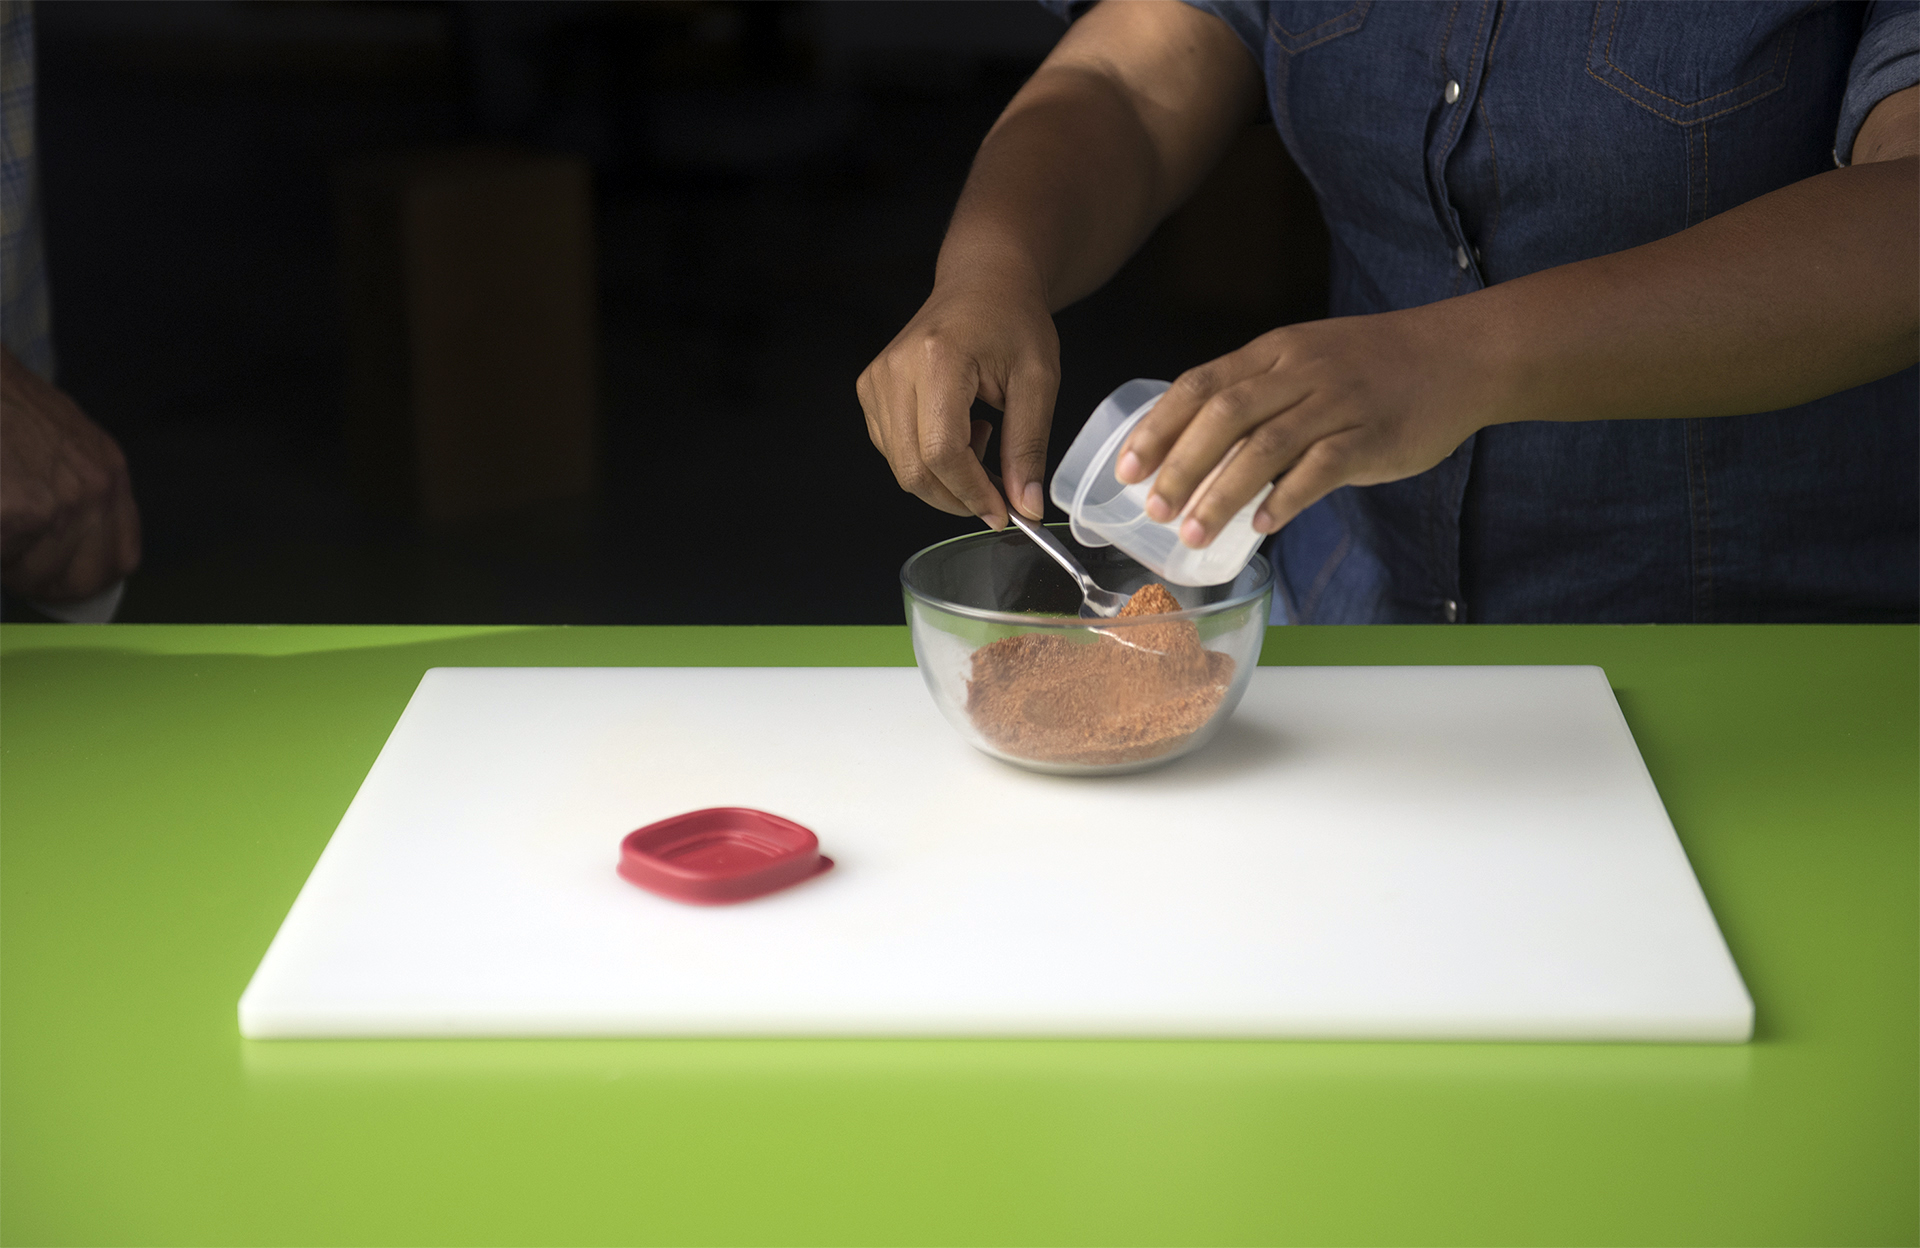 A woman places seasonings in a clear bowl on a white cutting board to prepare the all purpose seasoning.